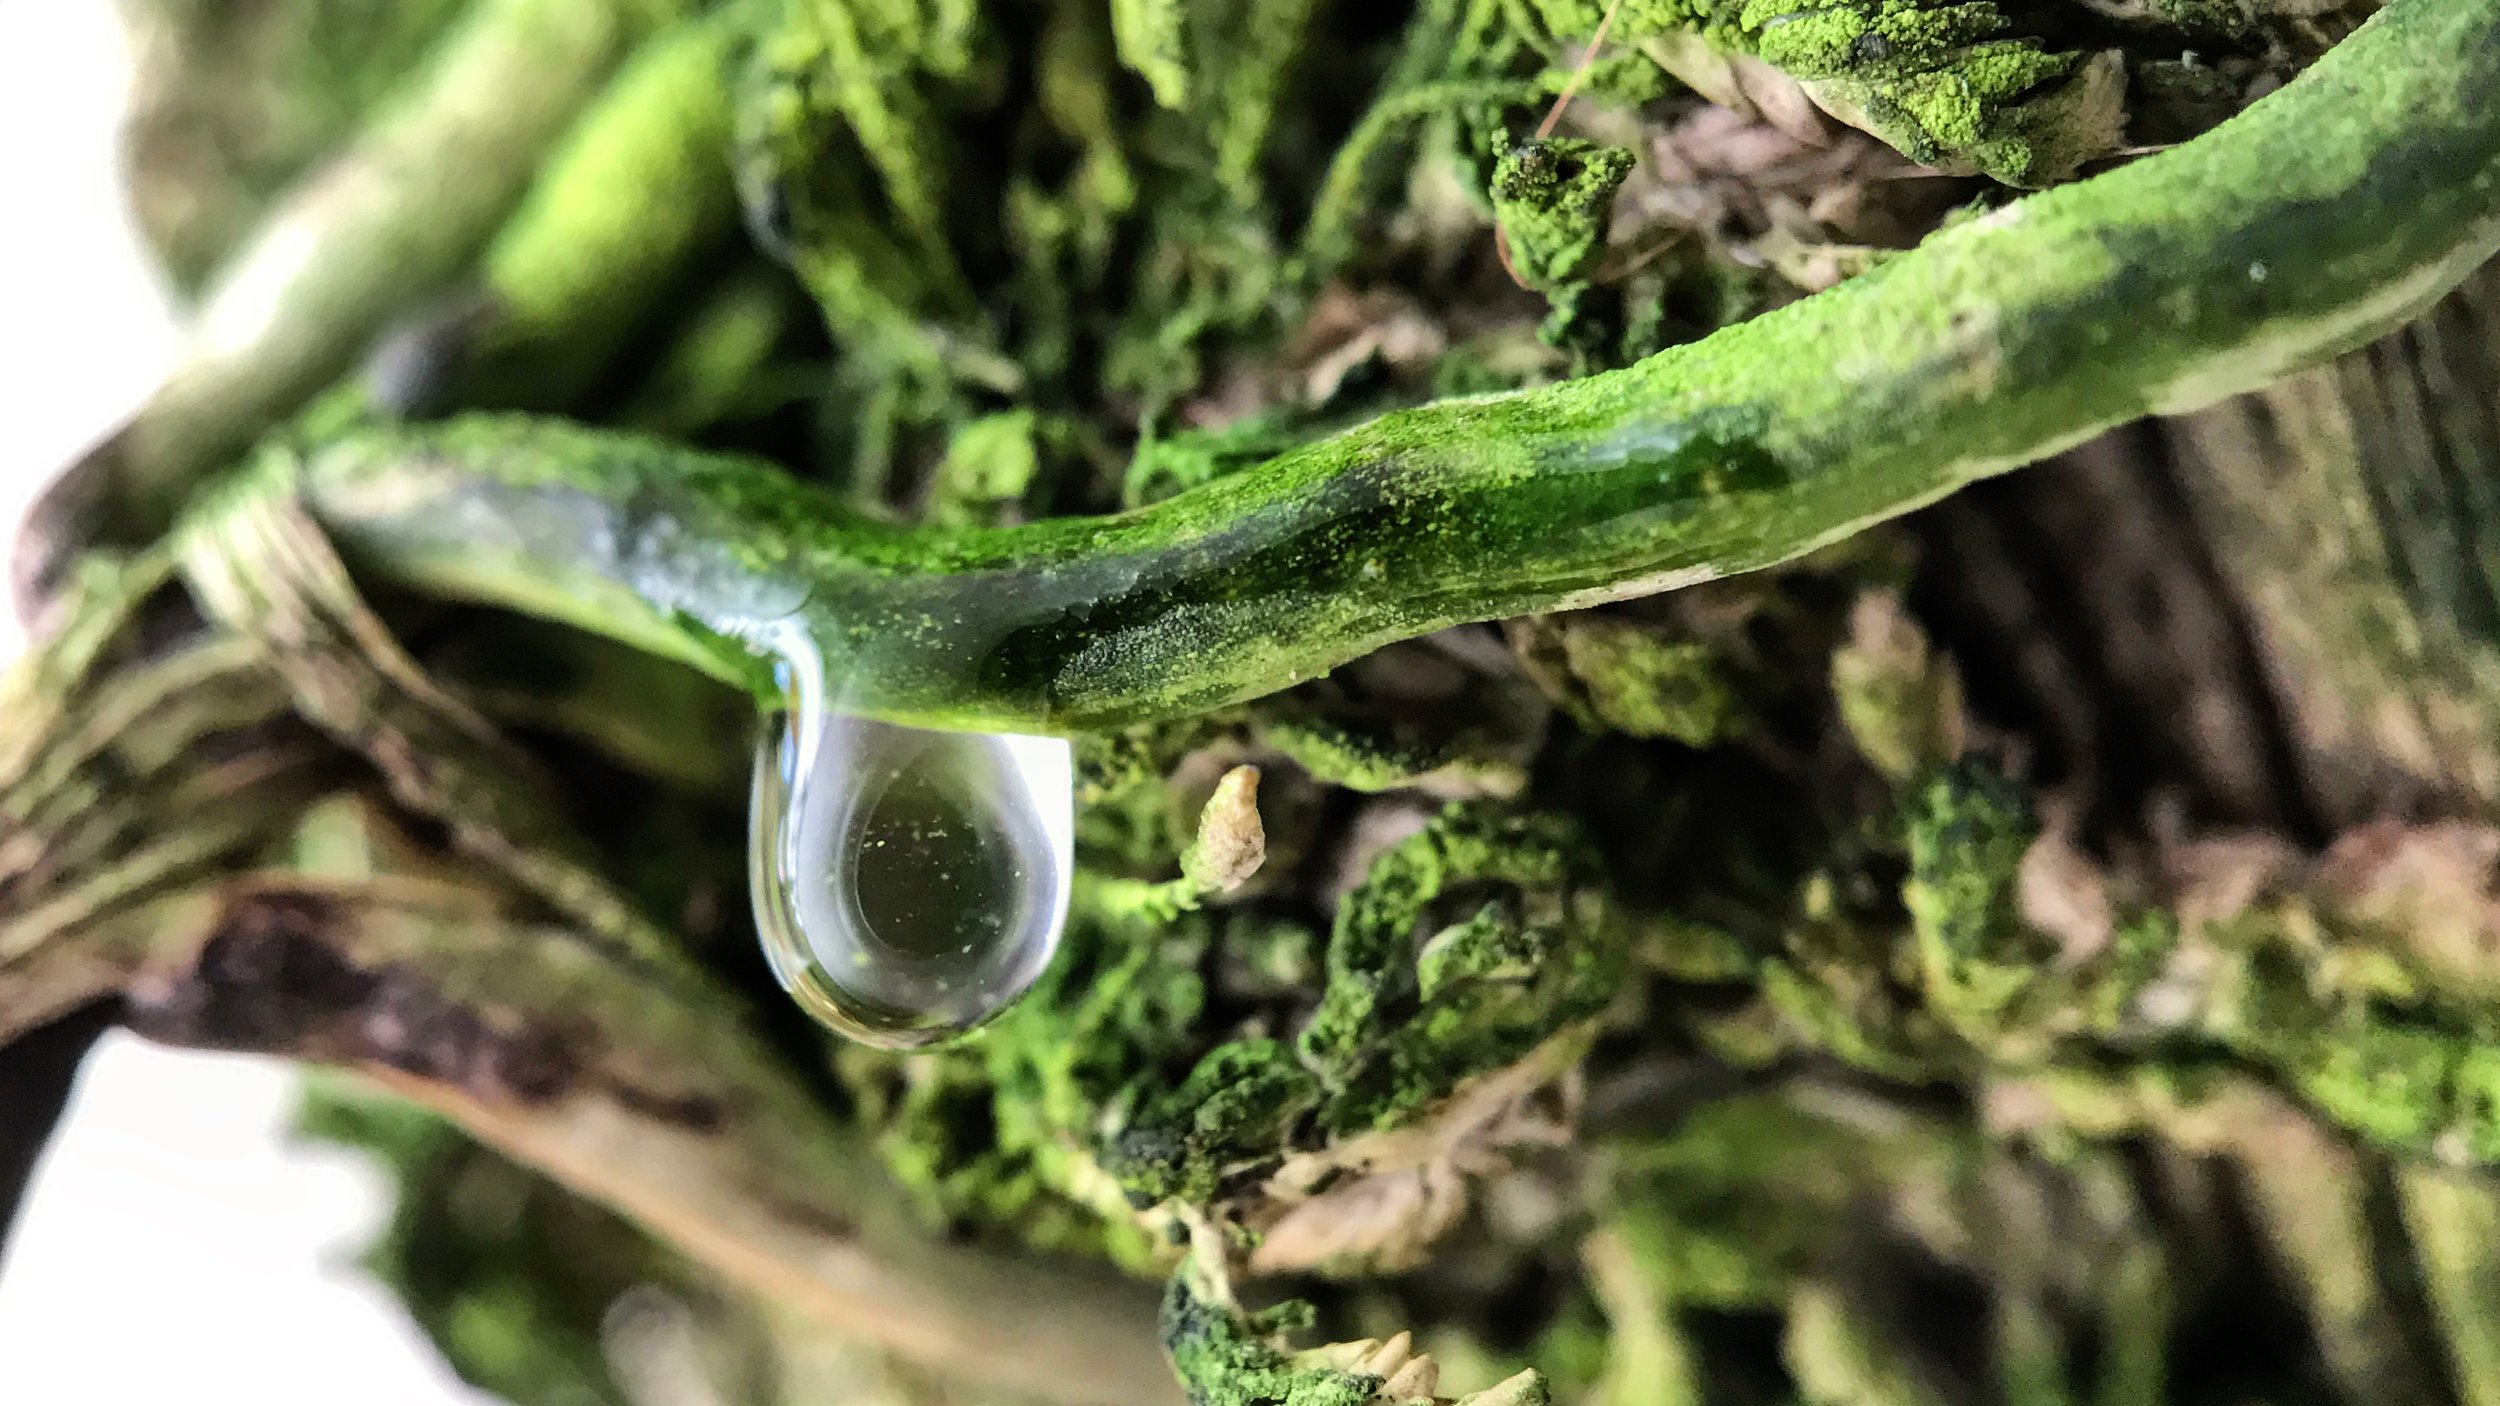 Macro image of a waterdrop being absorbed by a mounted Holcoglossum wangii.